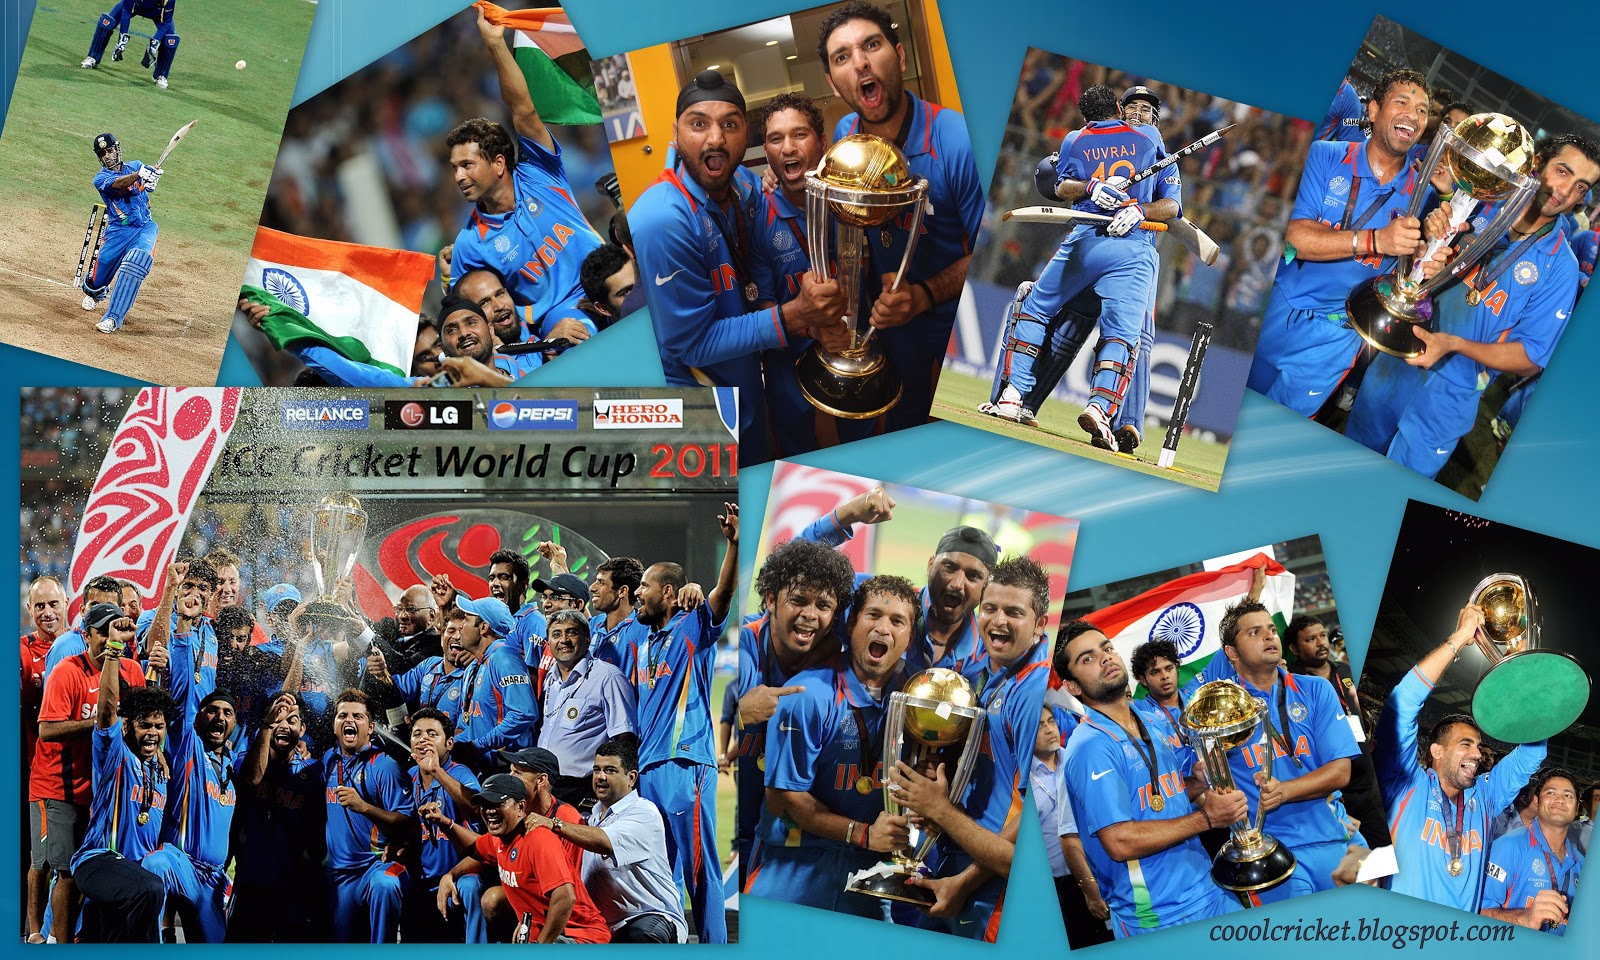 Cricket+world+cup+2011+winner+wallpaper